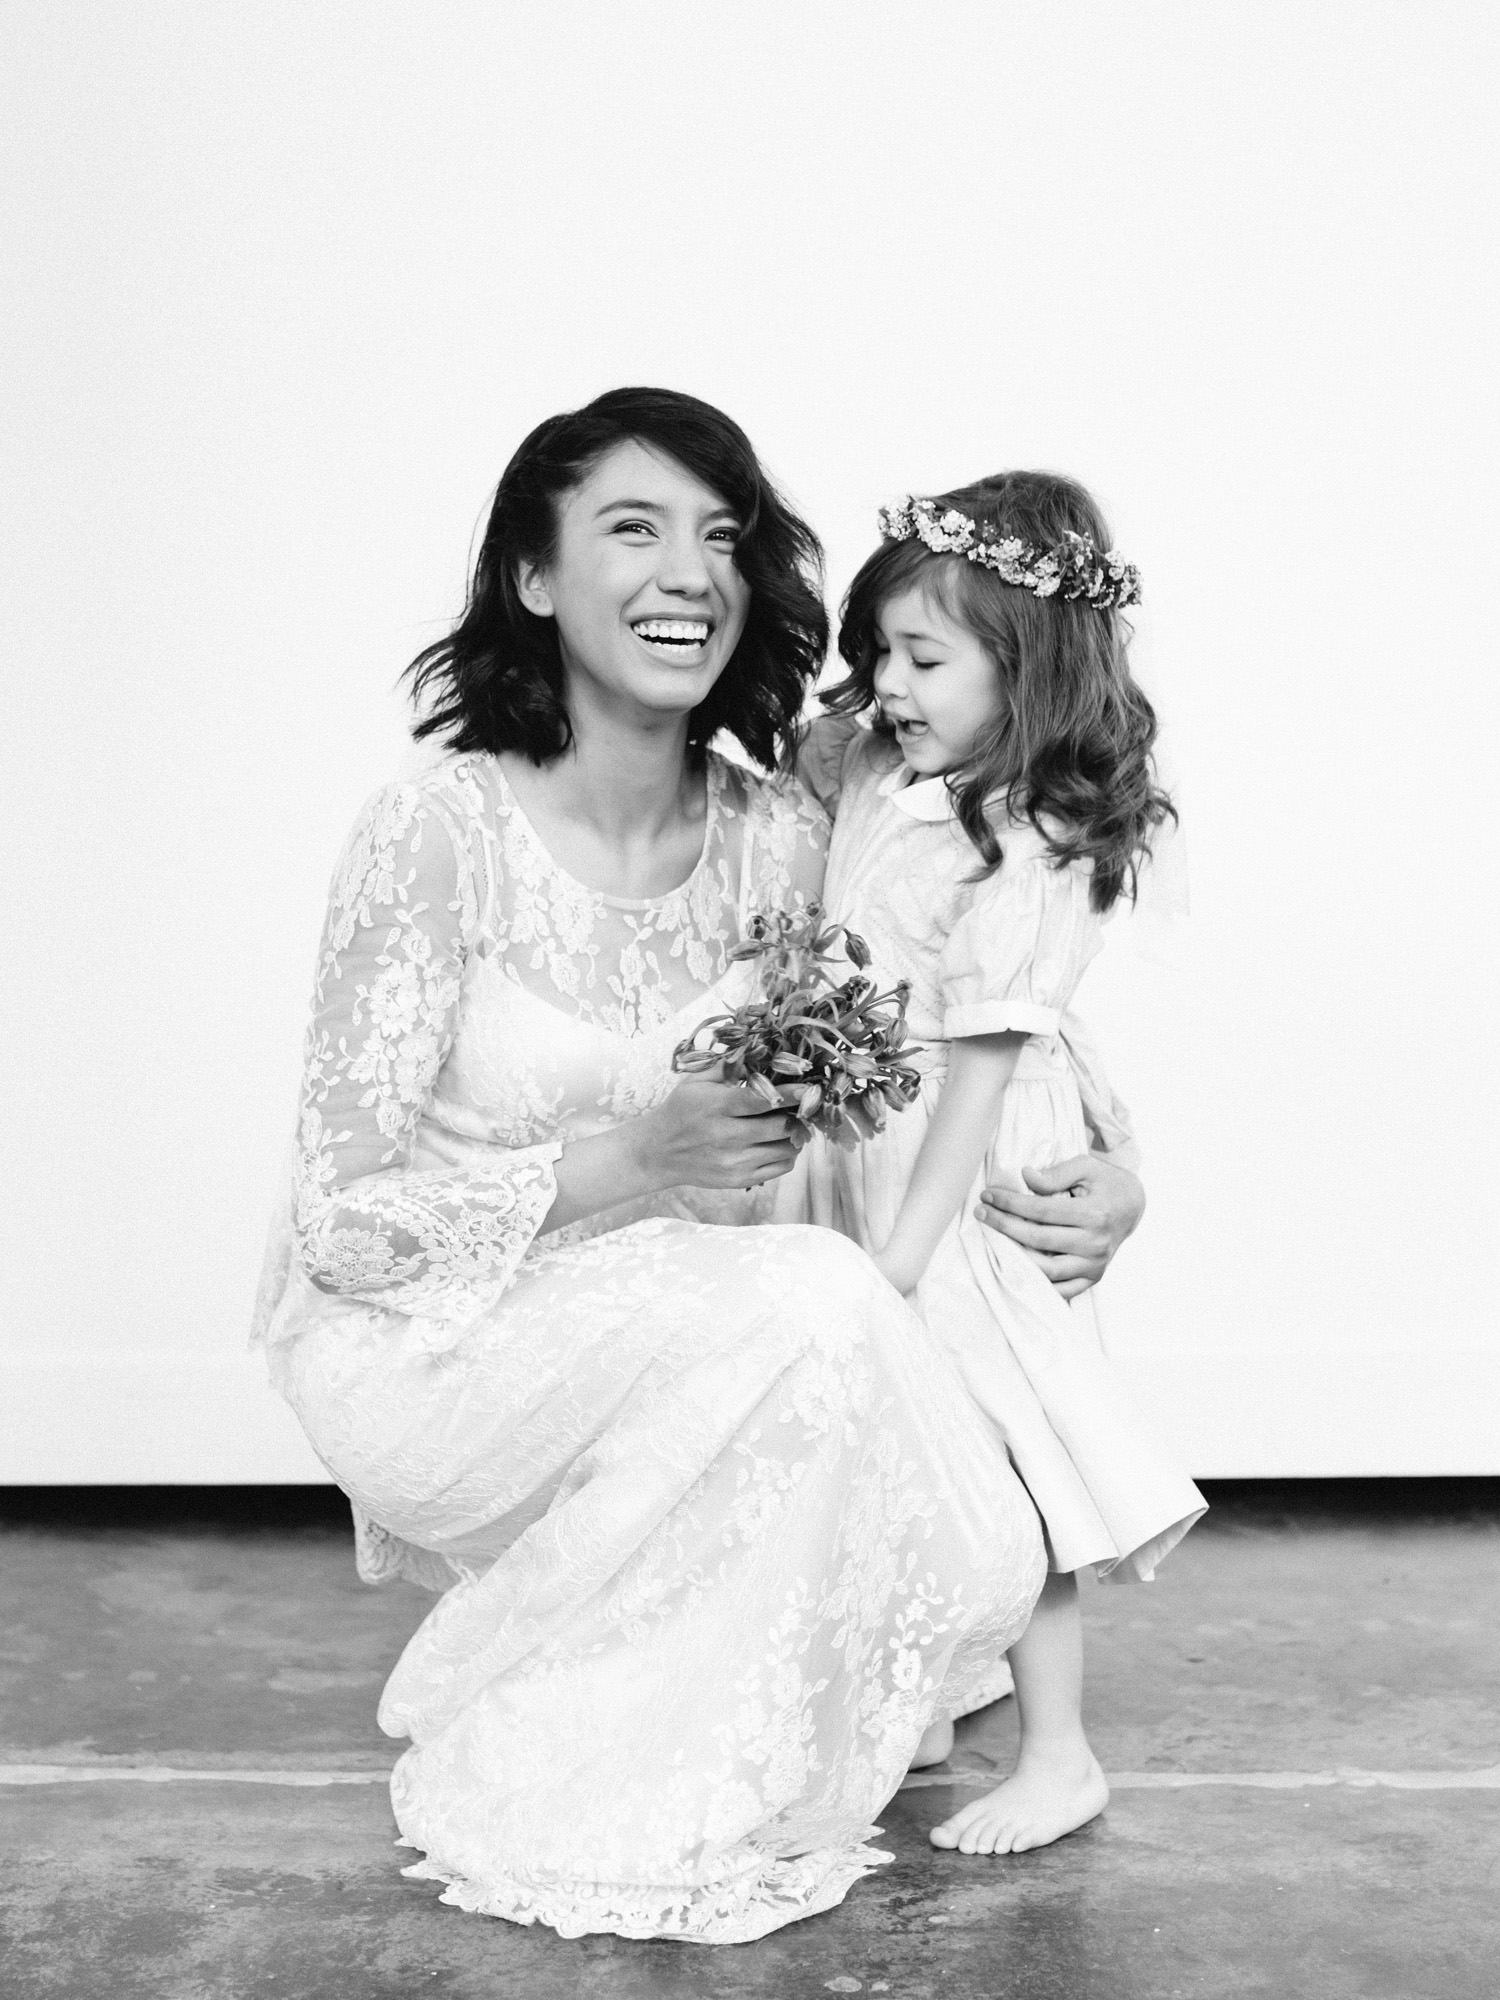 a bride in a lace gown and her flower girl laugh together